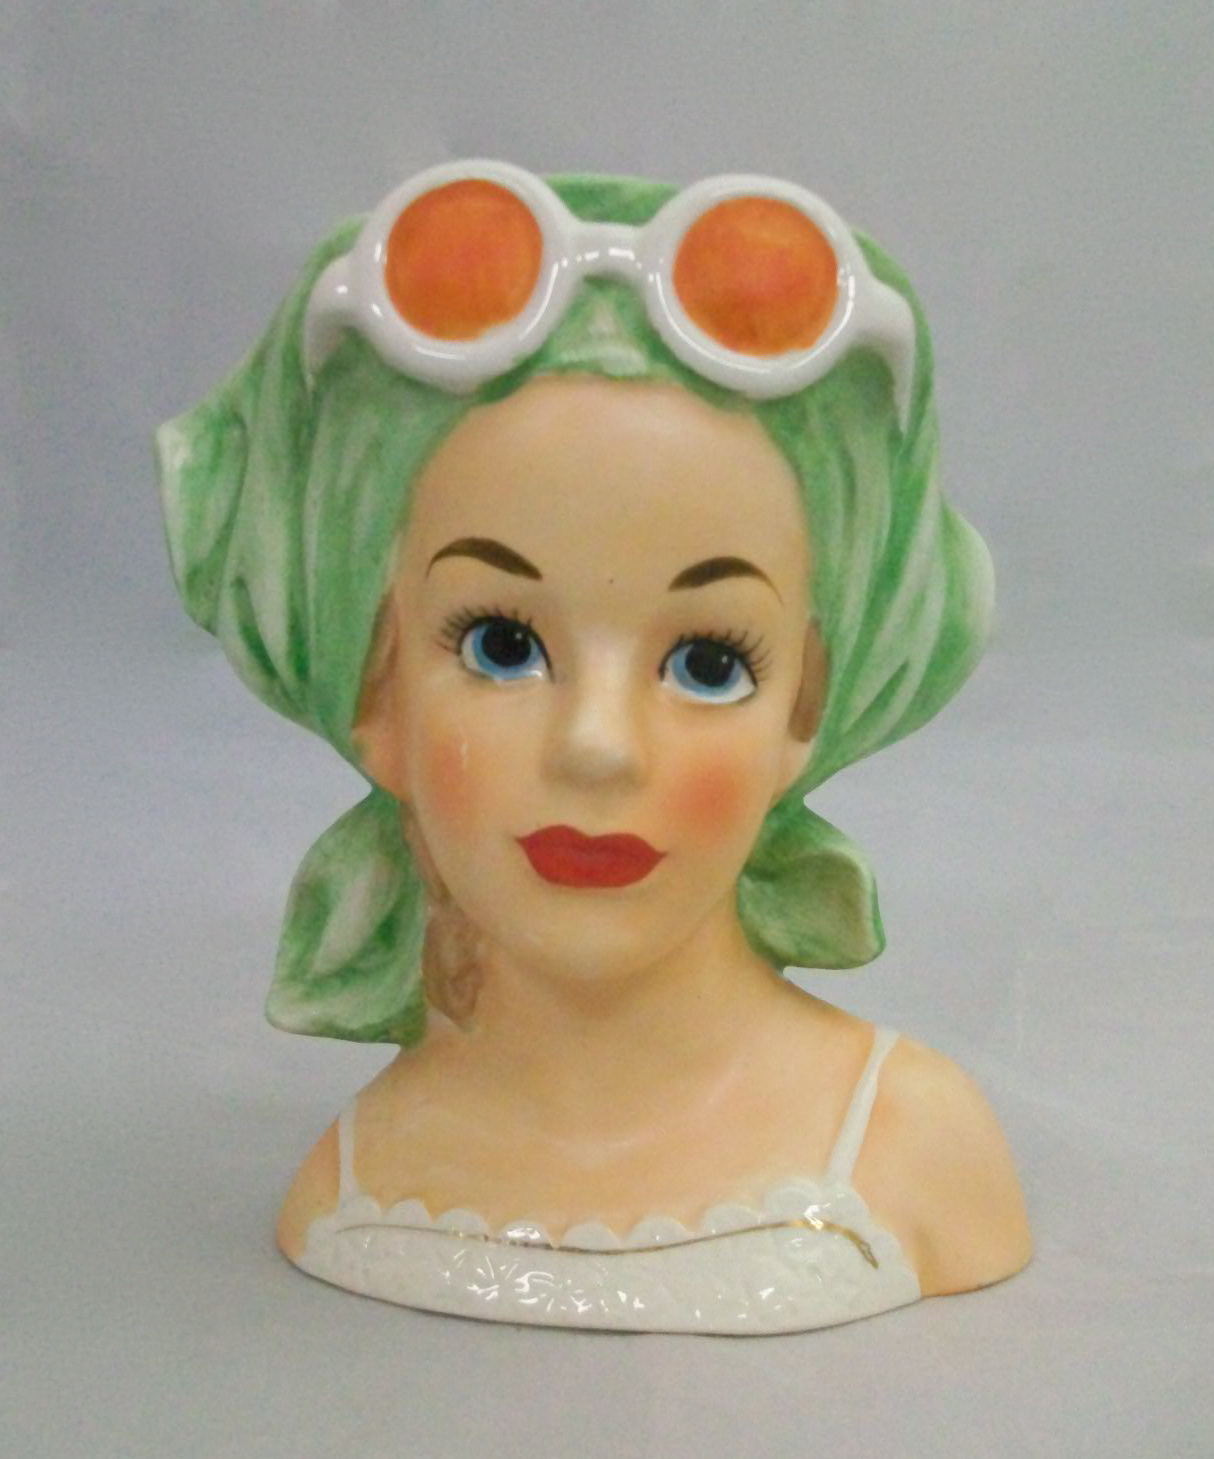 Relpo Sunglass Lady Head Vase K1863 For Sale Antiques